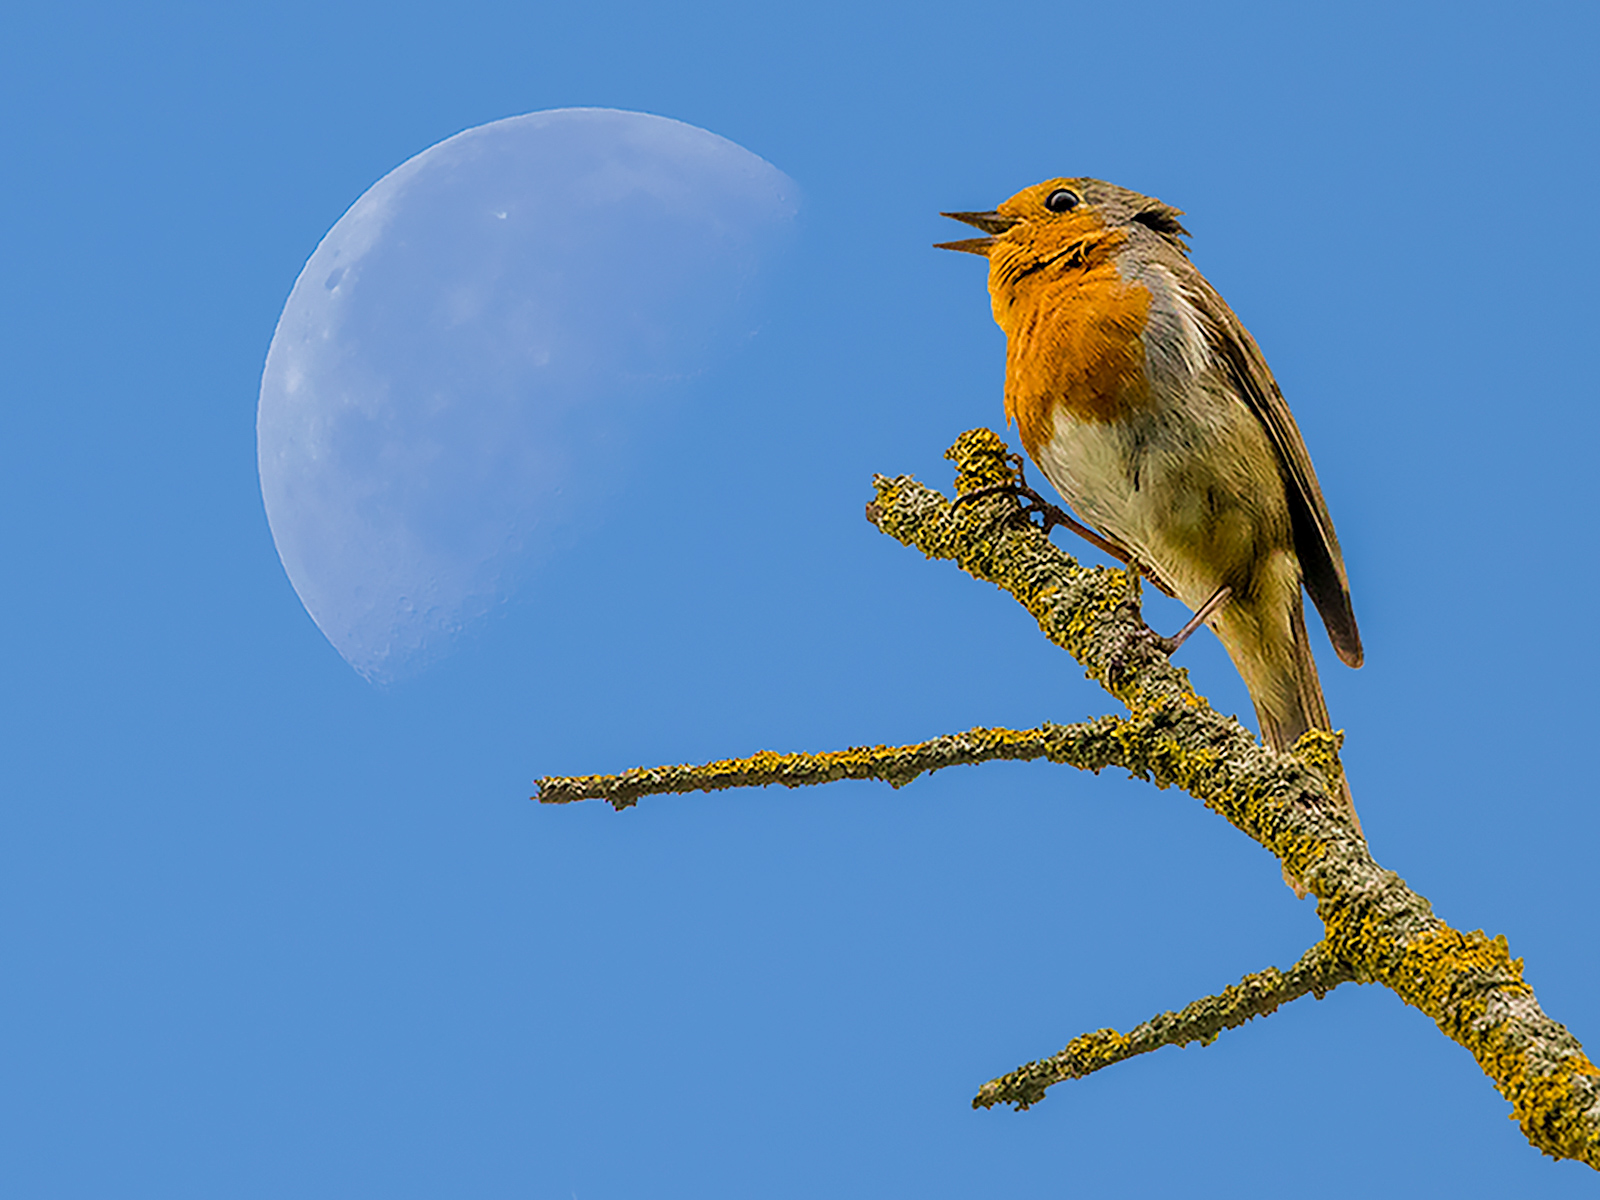 FLY ME TO THE MOON by Chris Stevens